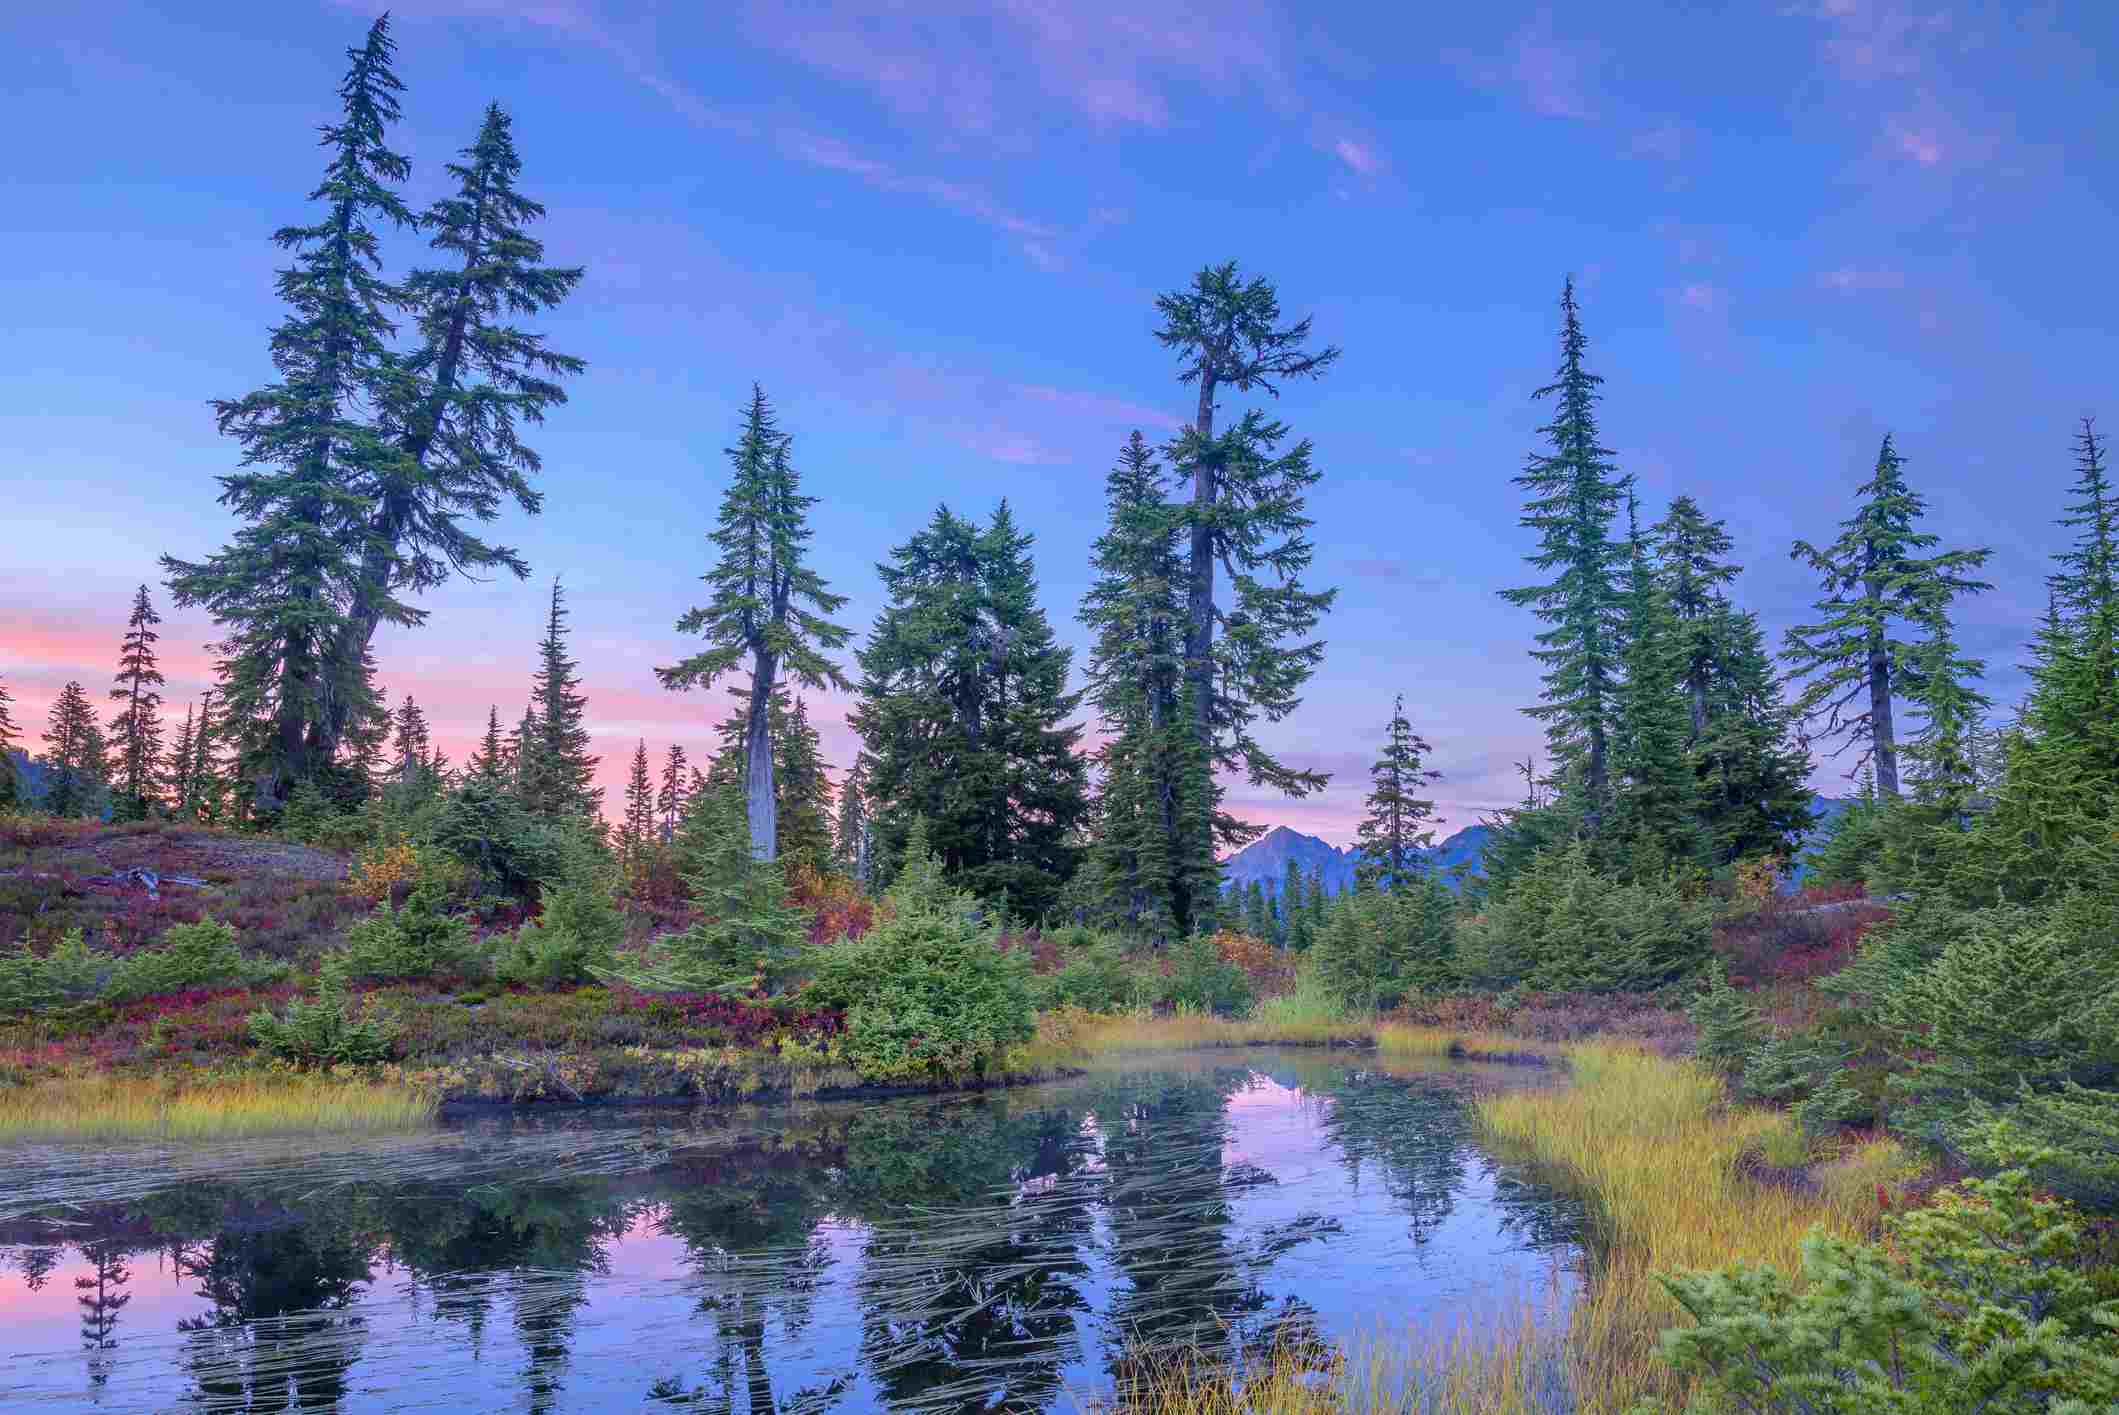 Mount Baker-Snoqualmie National Forest in Washington